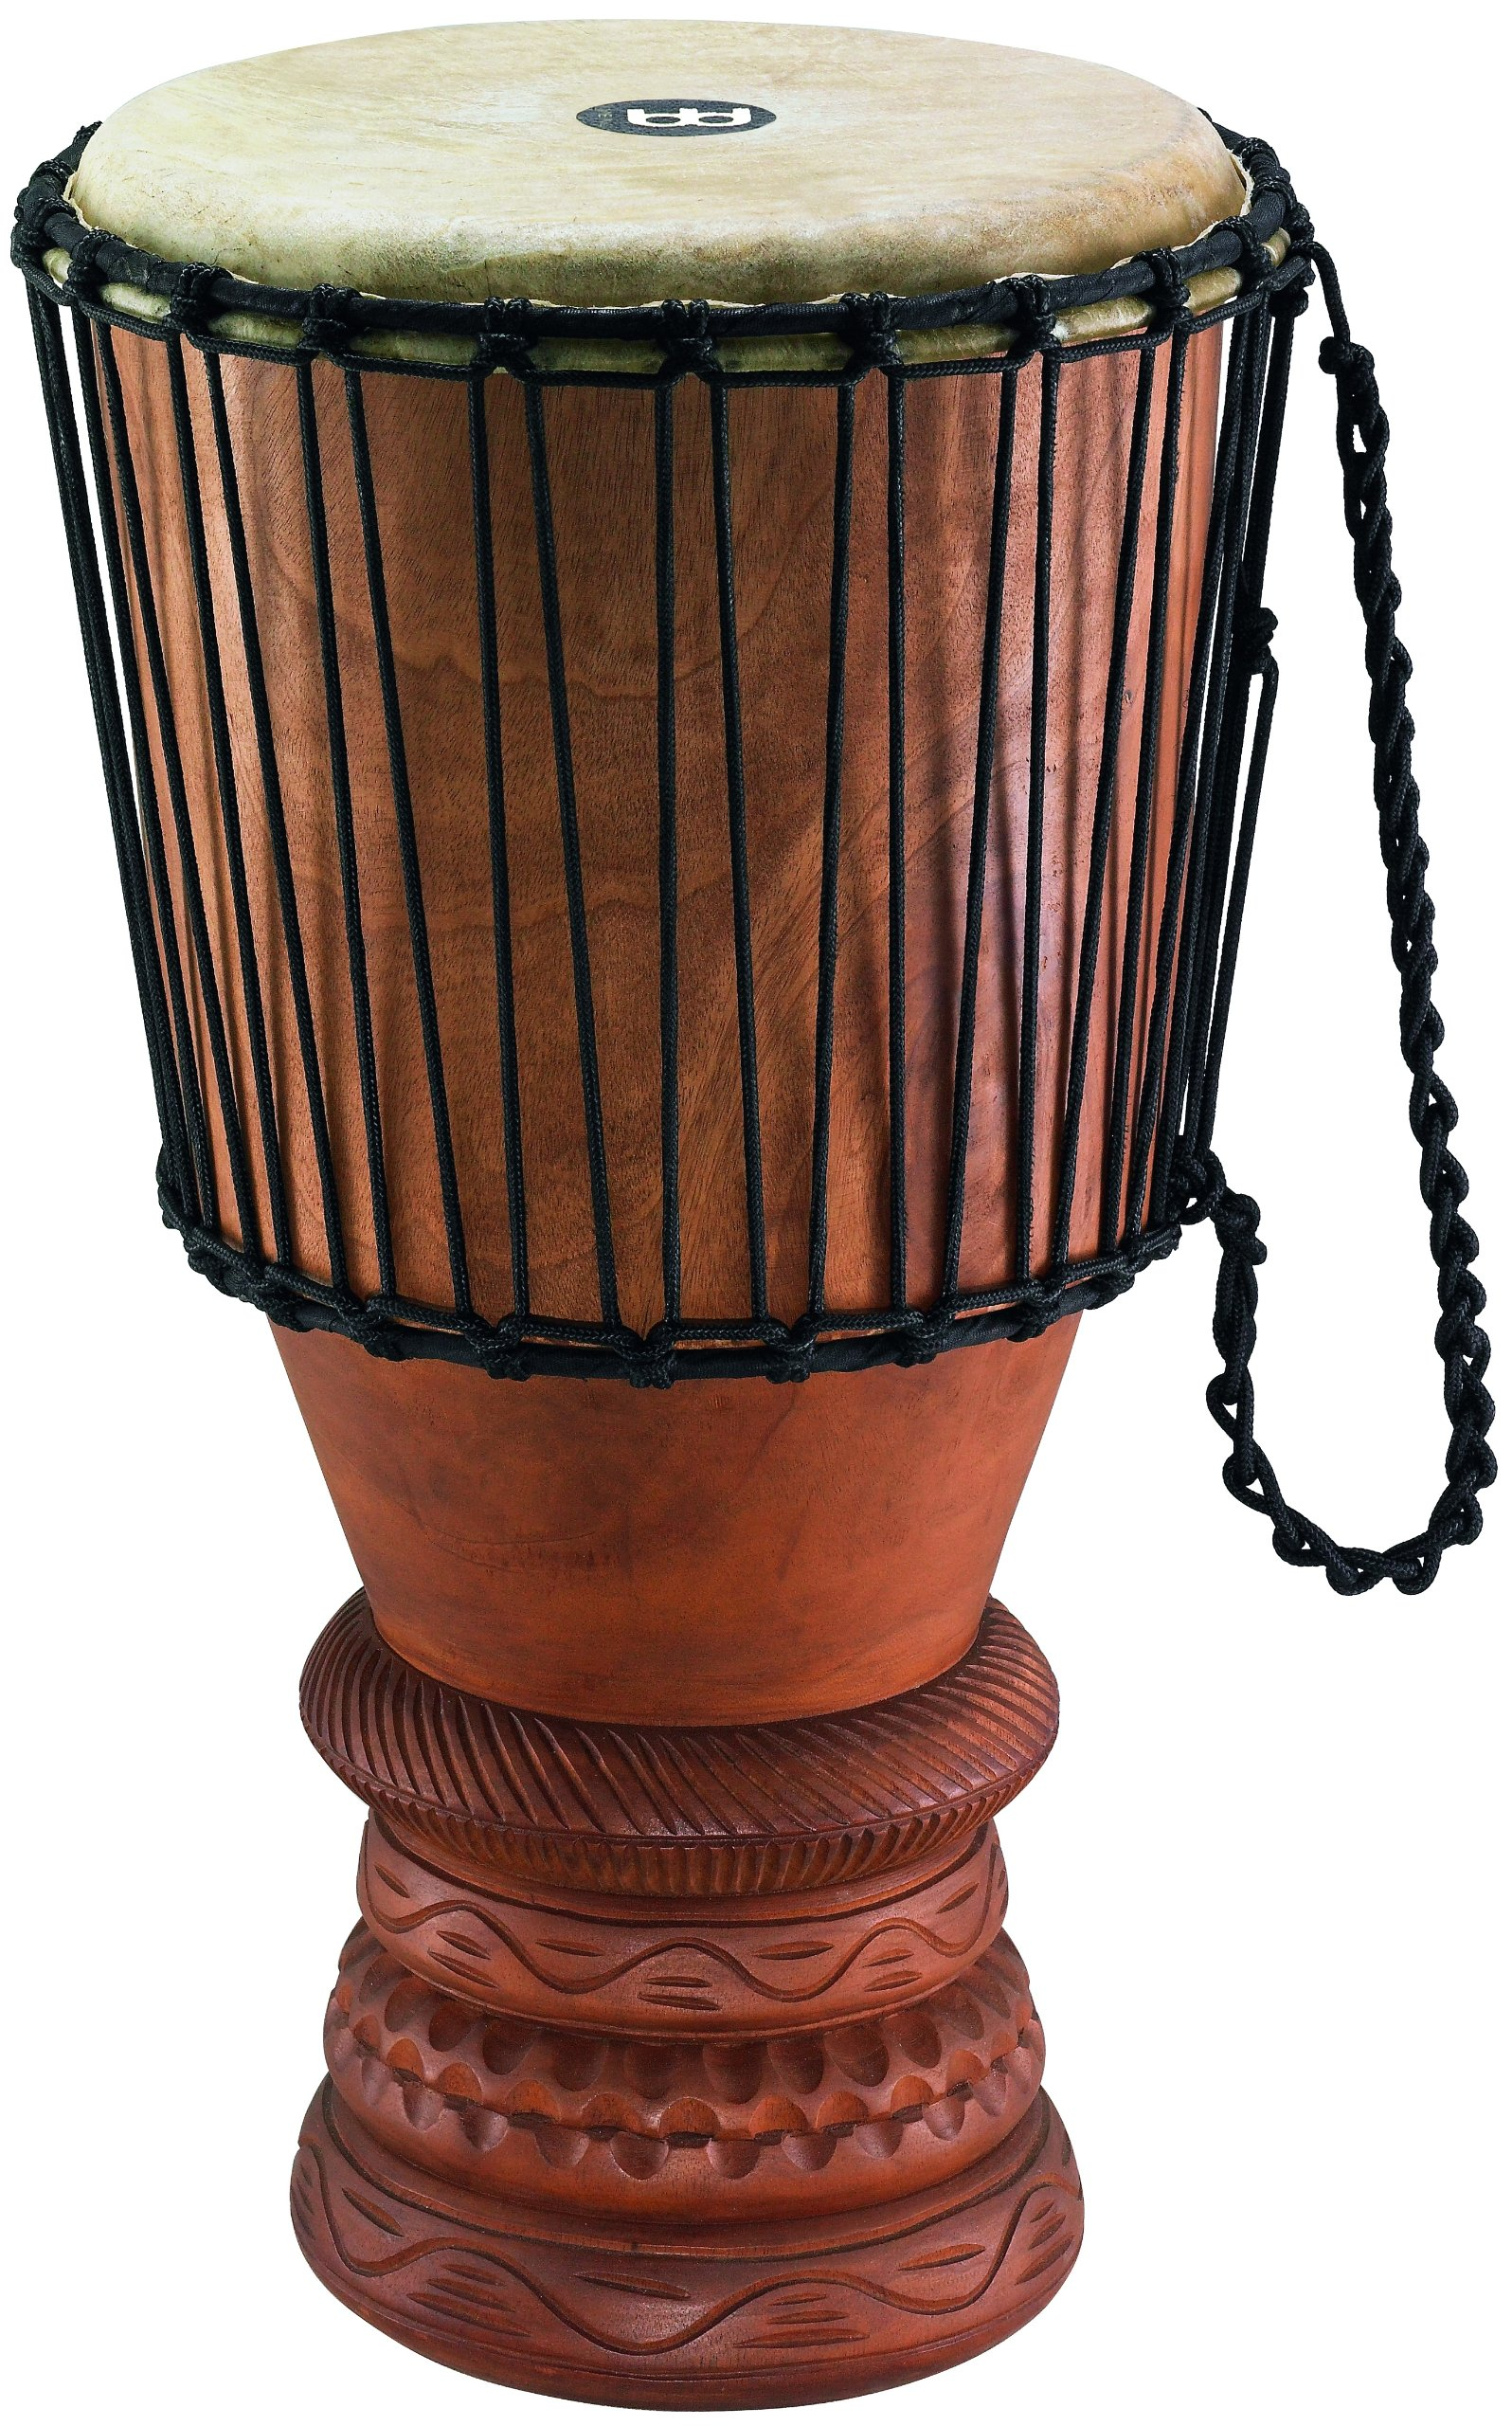 Meinl Percussion ABGB-L Large 12-Inch African Wood Bougarabou, Brown